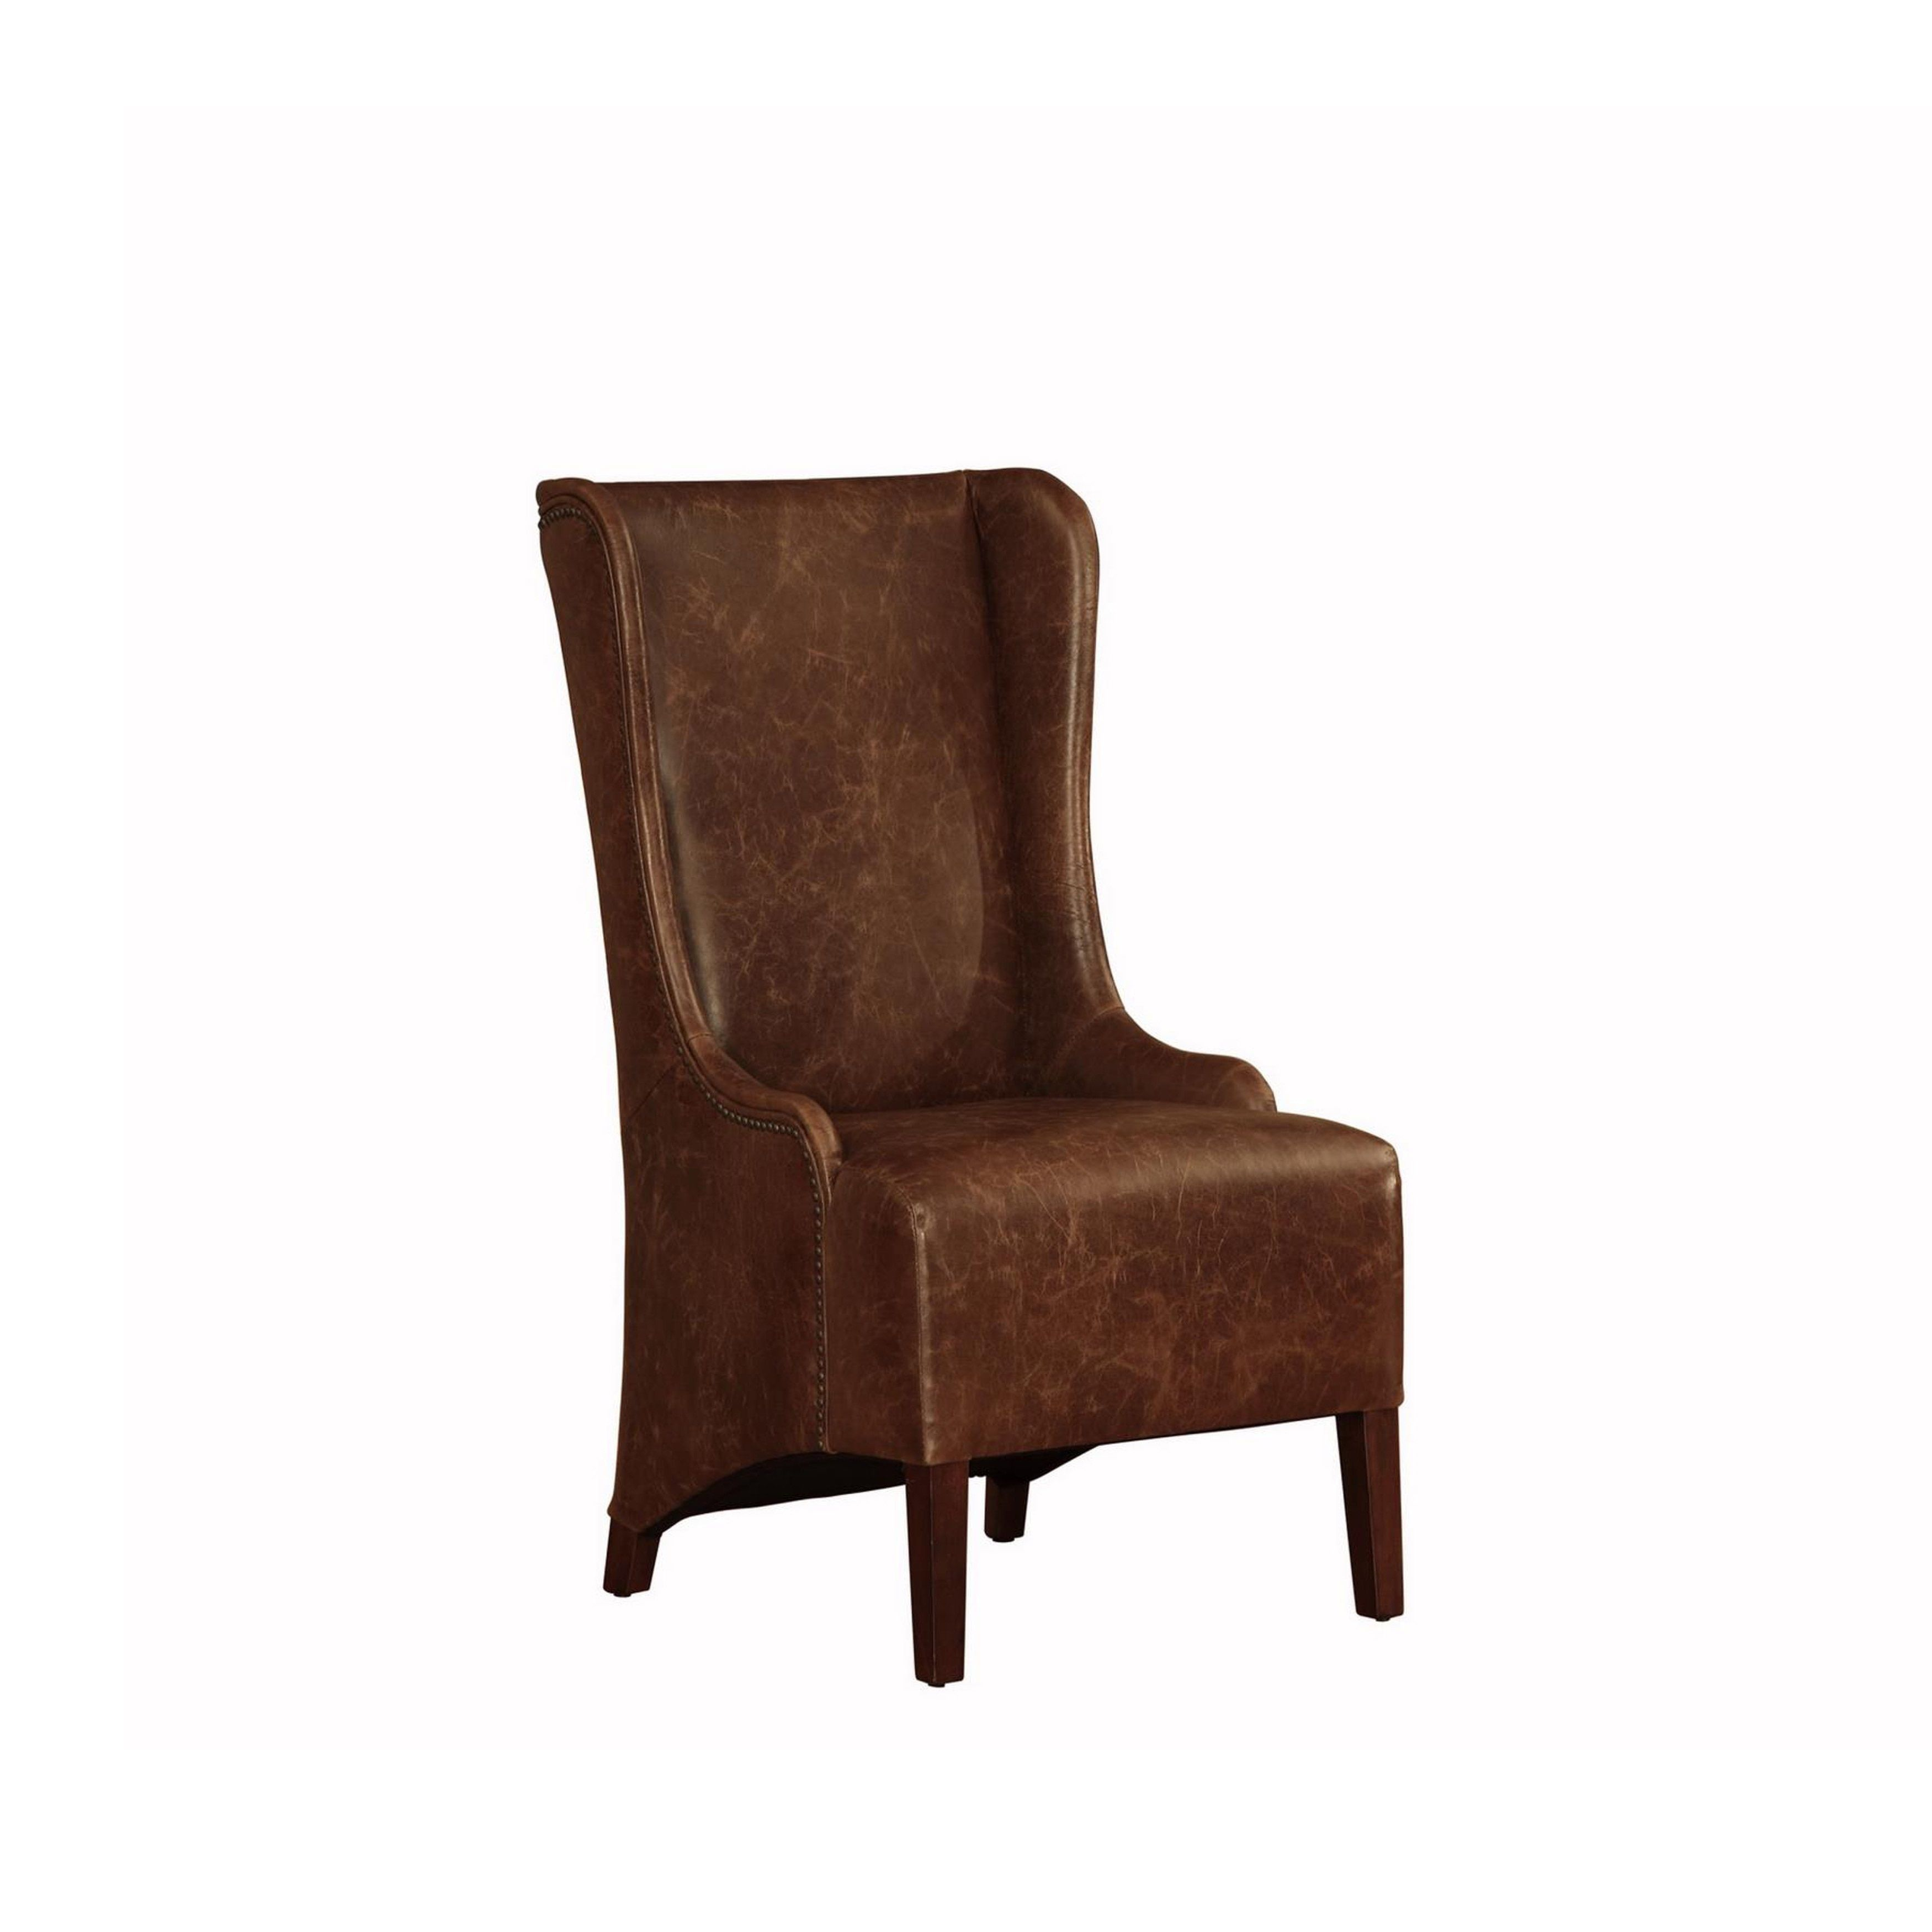 Lazzaro Leather King High Back Dining Chair Brown Fabric